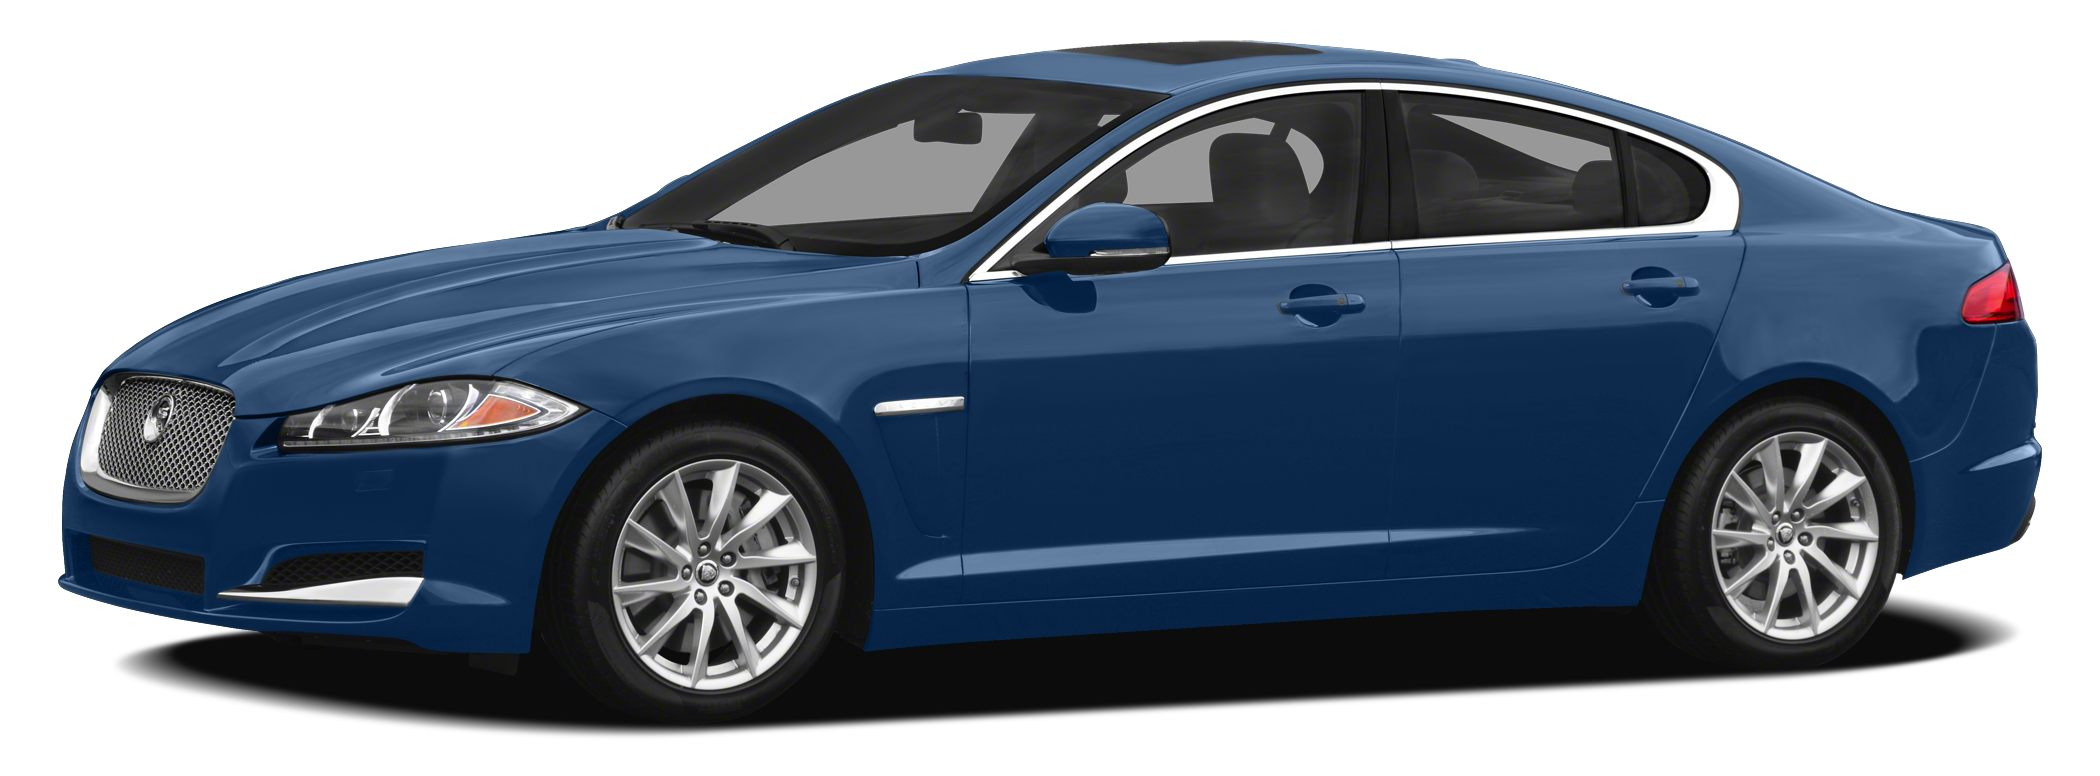 2012 Jaguar XF Portfolio Visit Best Auto Group online at bronxbestautocom to see more pictures of